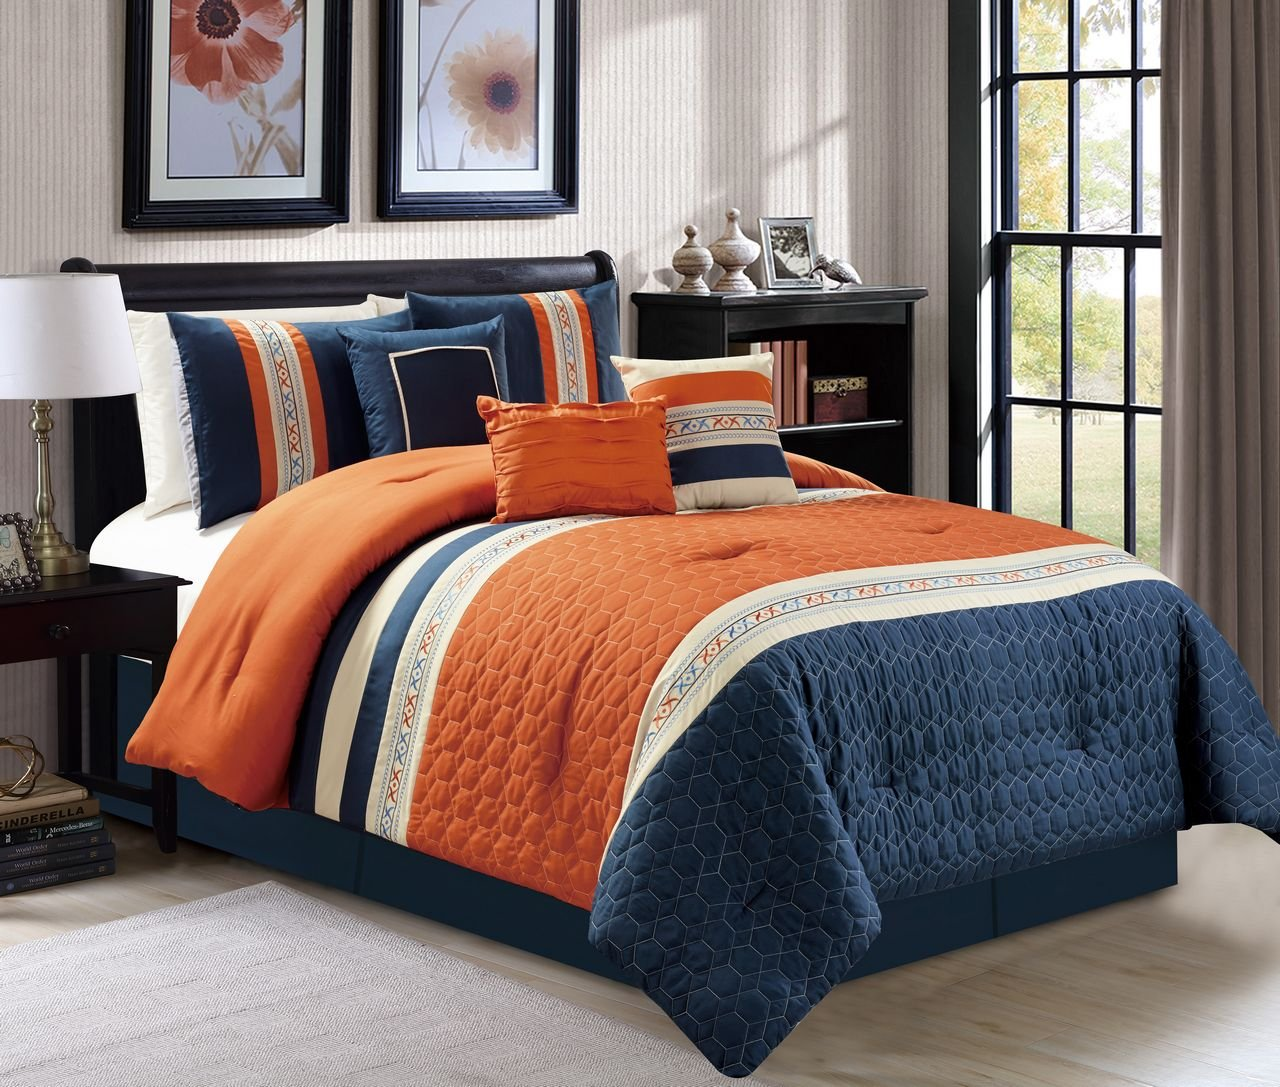 New pc cal king size honeycomb quilted orange navy ivory